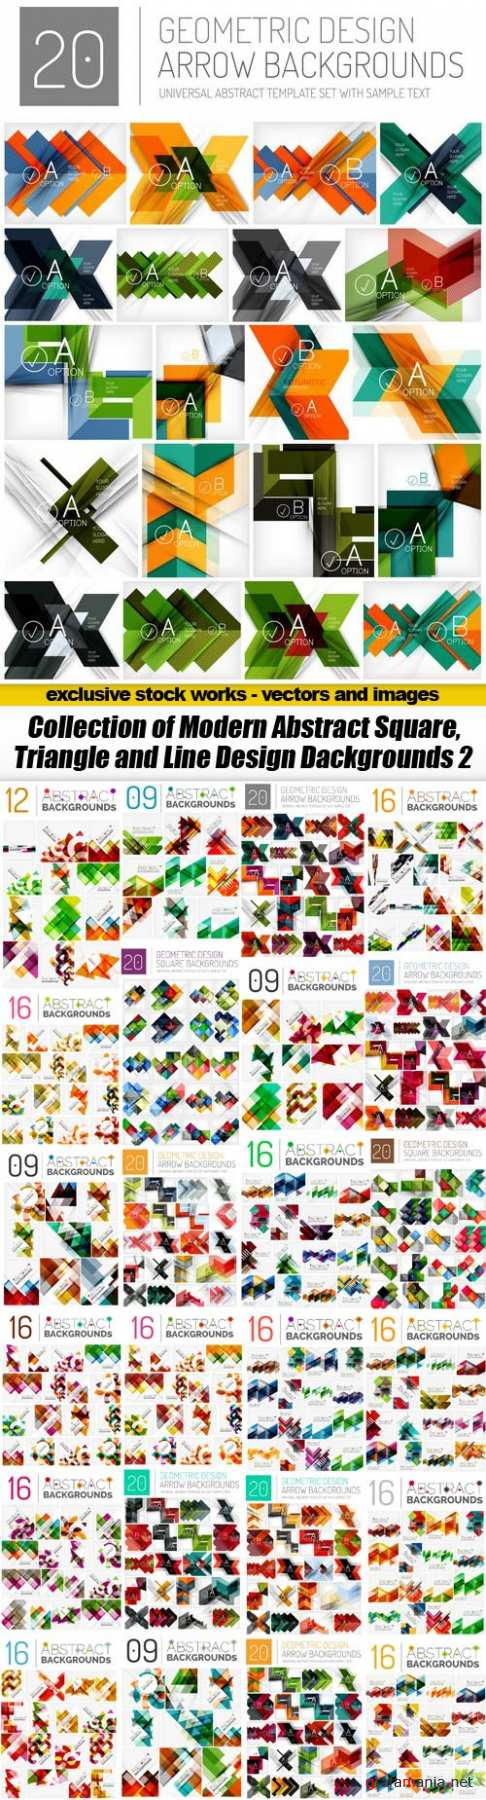 Collection of Modern Abstract Square, Triangle and Line Design Dackgrounds 2 - 25xEPS